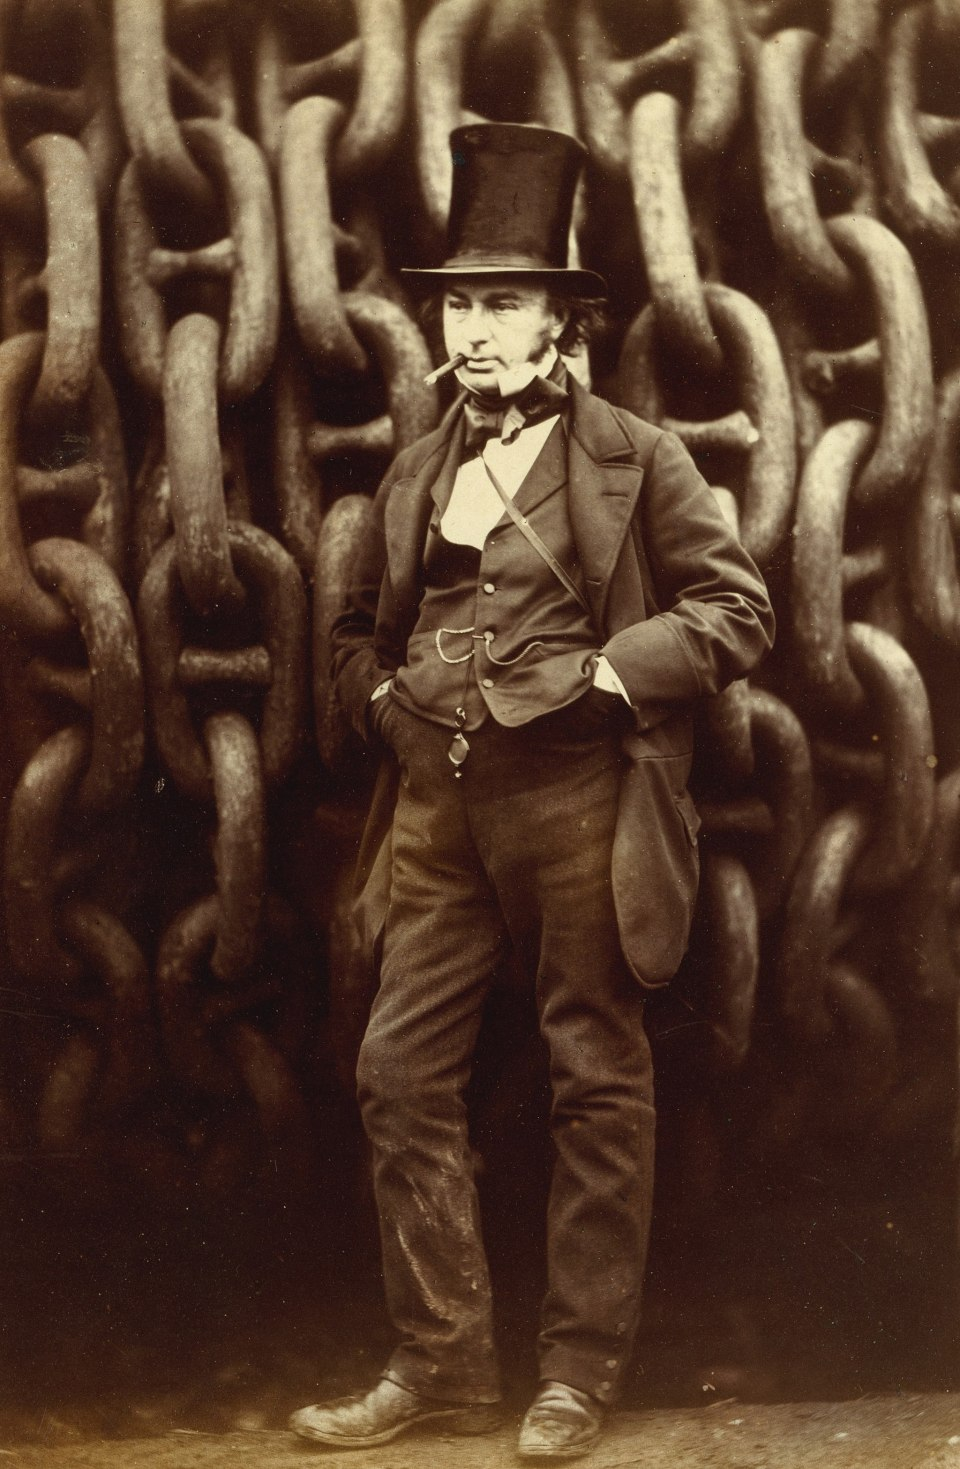 Isambard Kingdom Brunel Standing Before the Launching Chains of the Great Eastern, photograph by Robert Howlett.